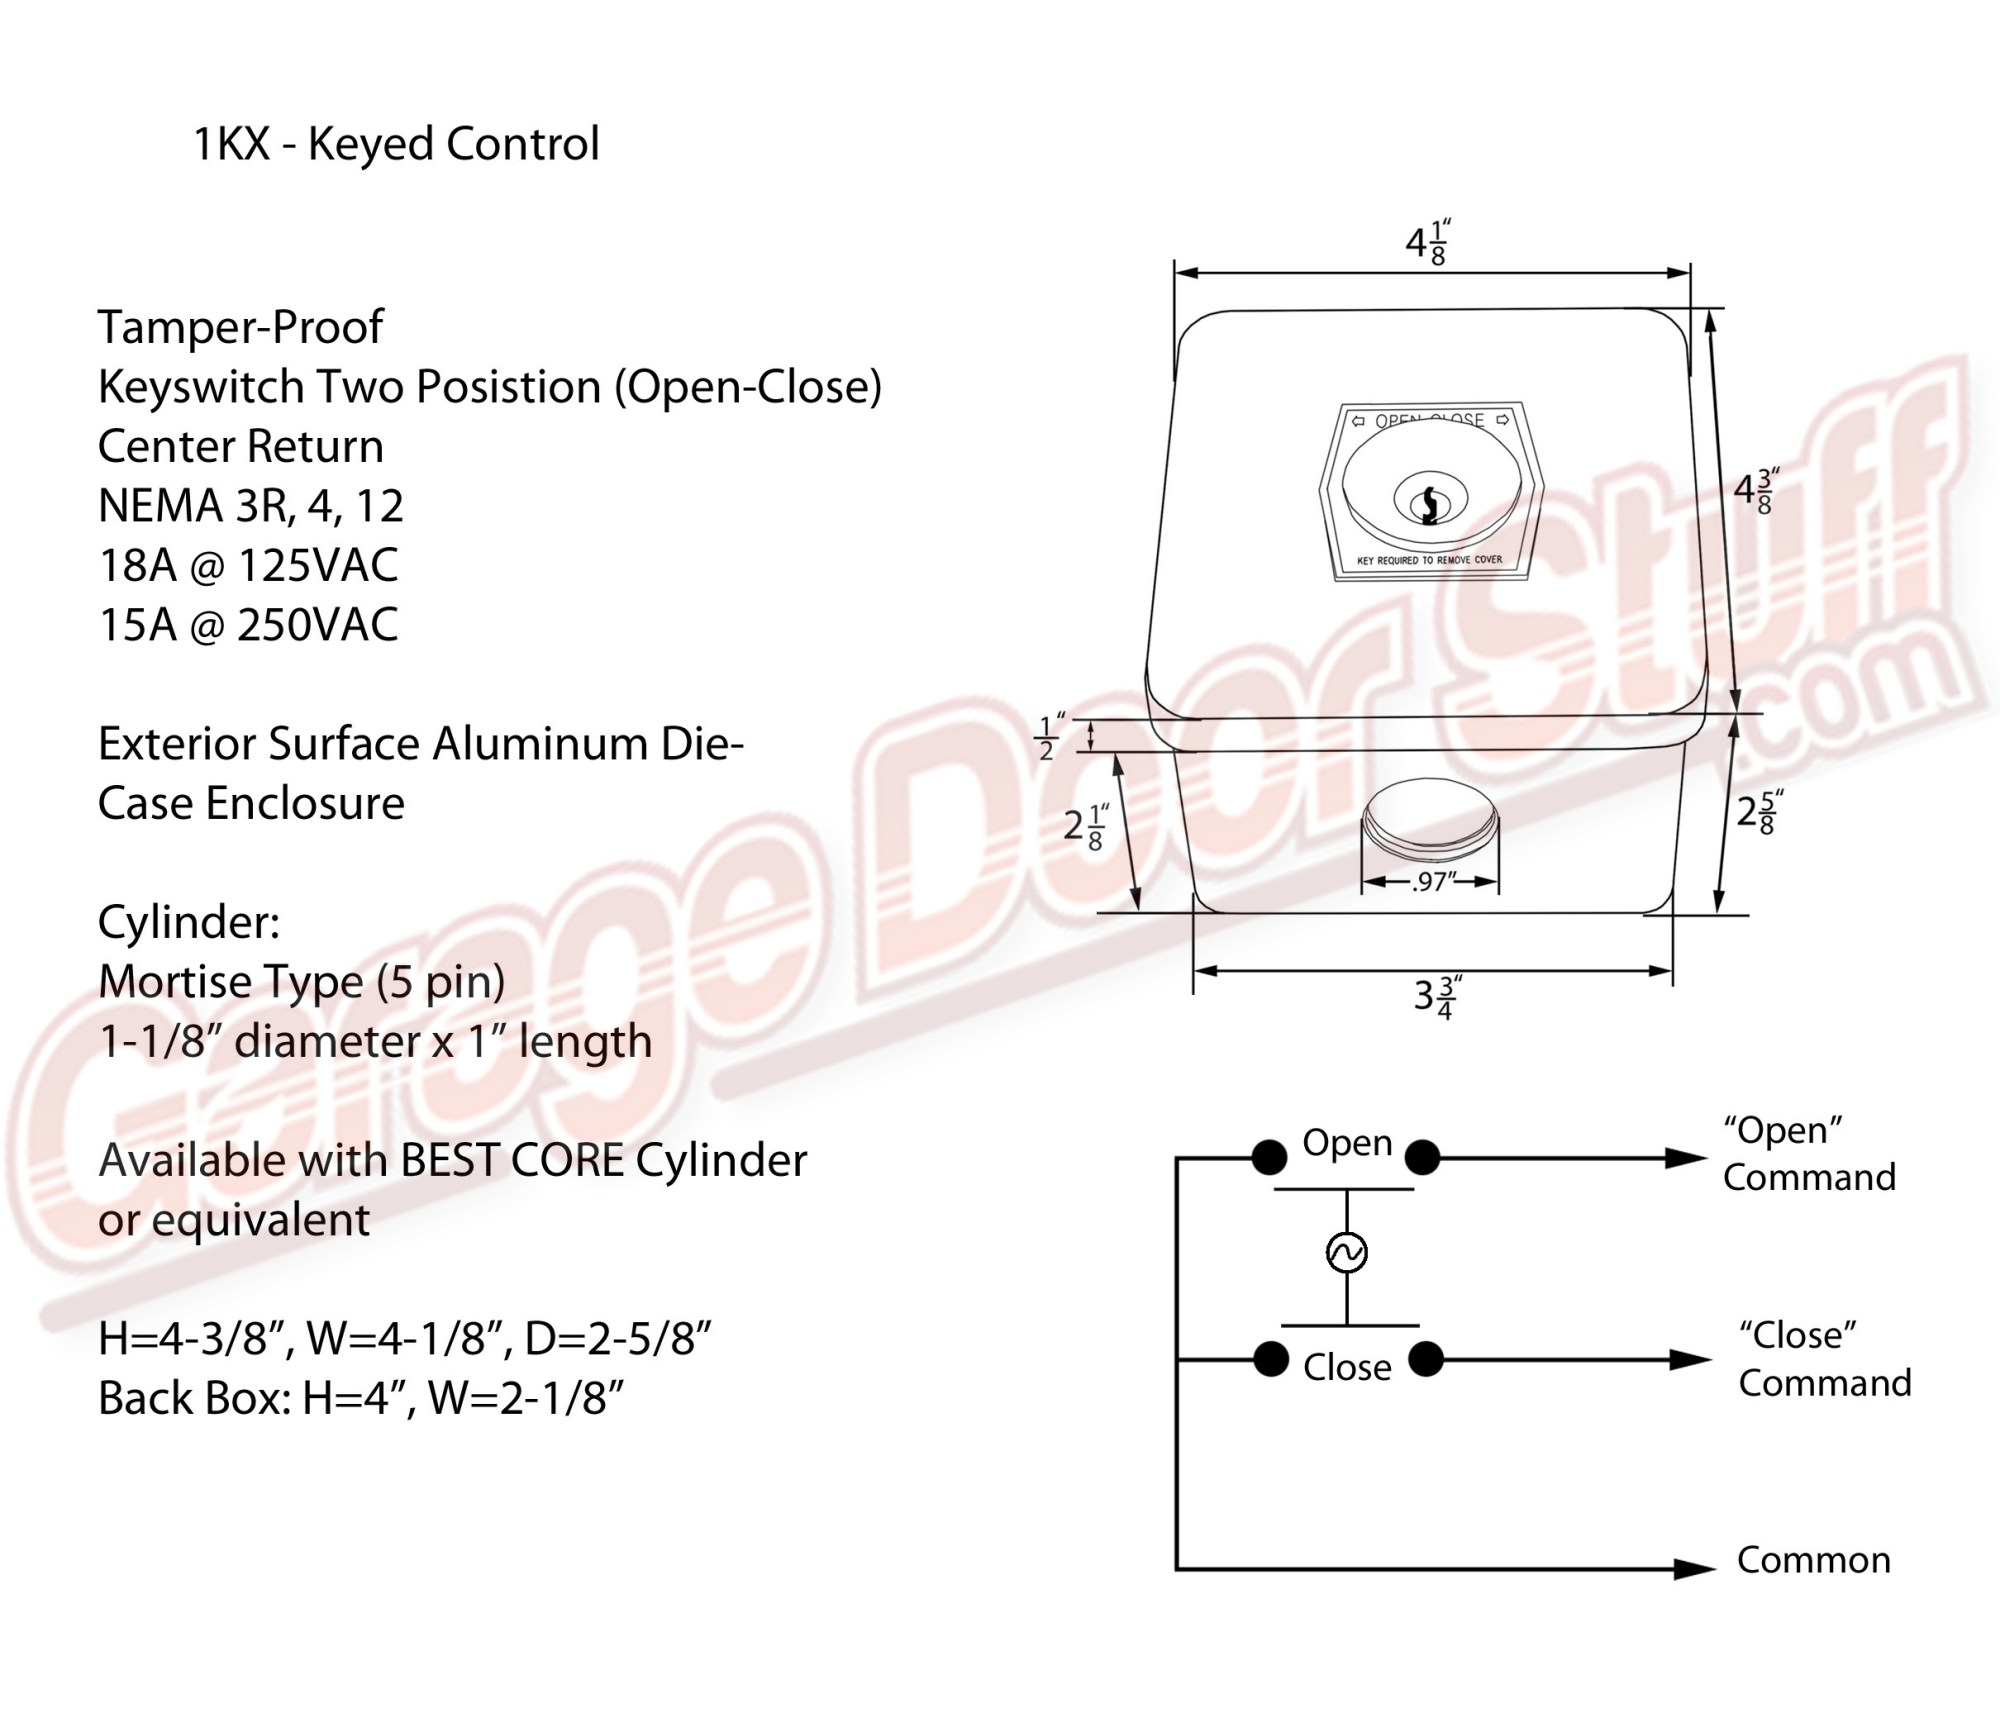 hight resolution of 1kxs key switch schematic million wiring diagram collection 5mge performance toyota 5mge wiring diagram